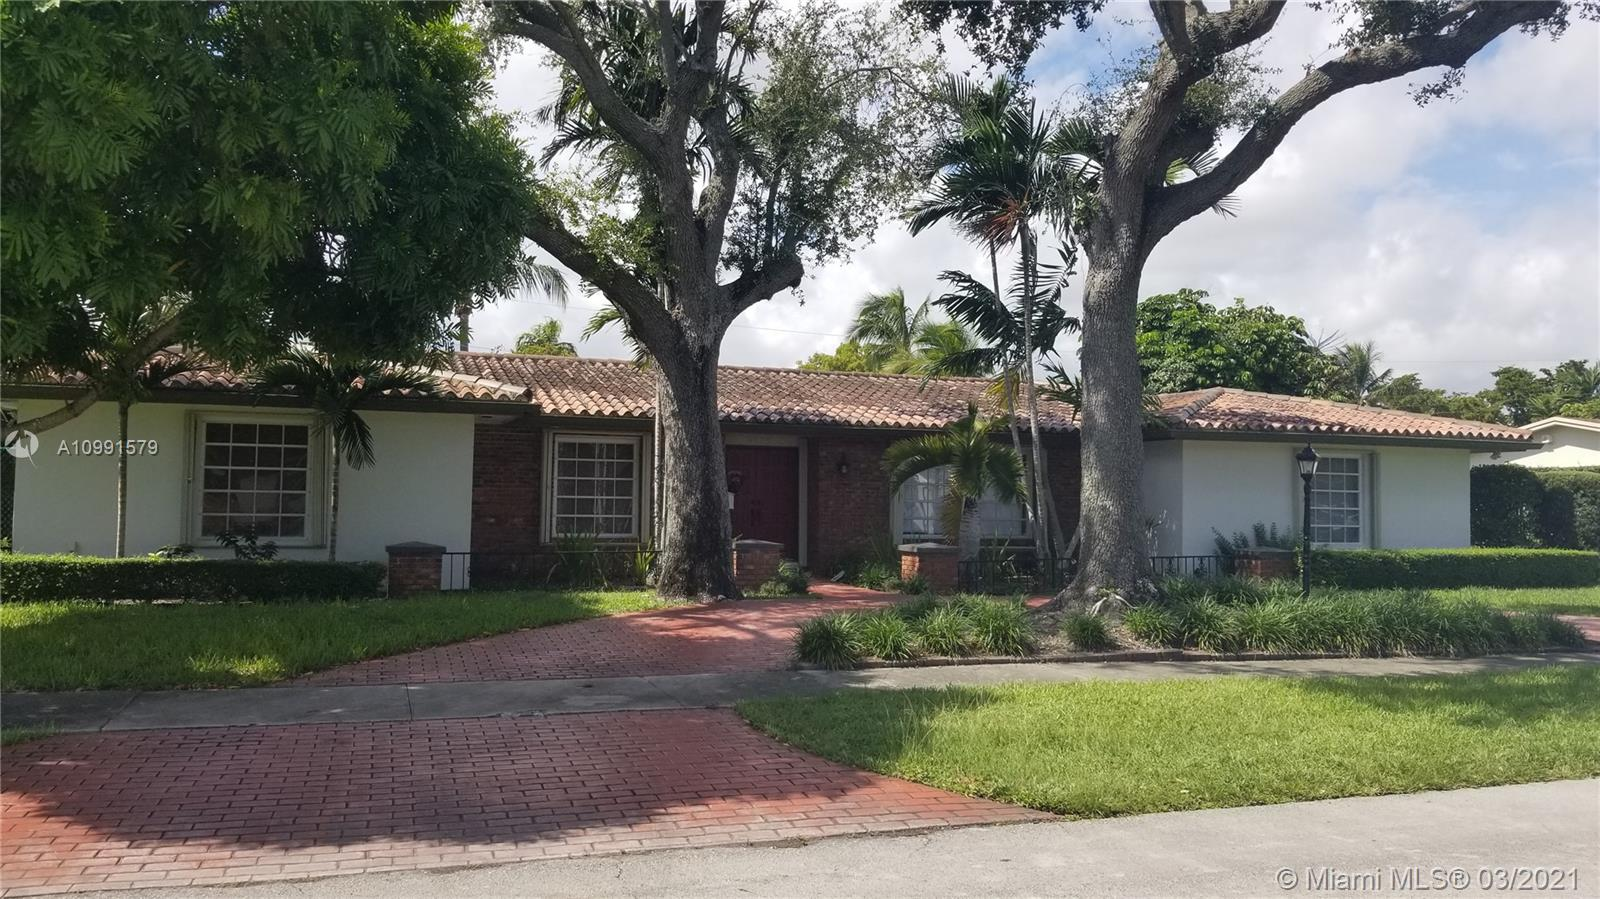 Excellent location, right of Kendall Drive. Next to Baptist Hospital South. Beautiful one story home situated in the prime location of Dadeland. Wonderful schools close by, just minutes to finest shops, dining and entertainment. Next to Highways and Metro Rail.